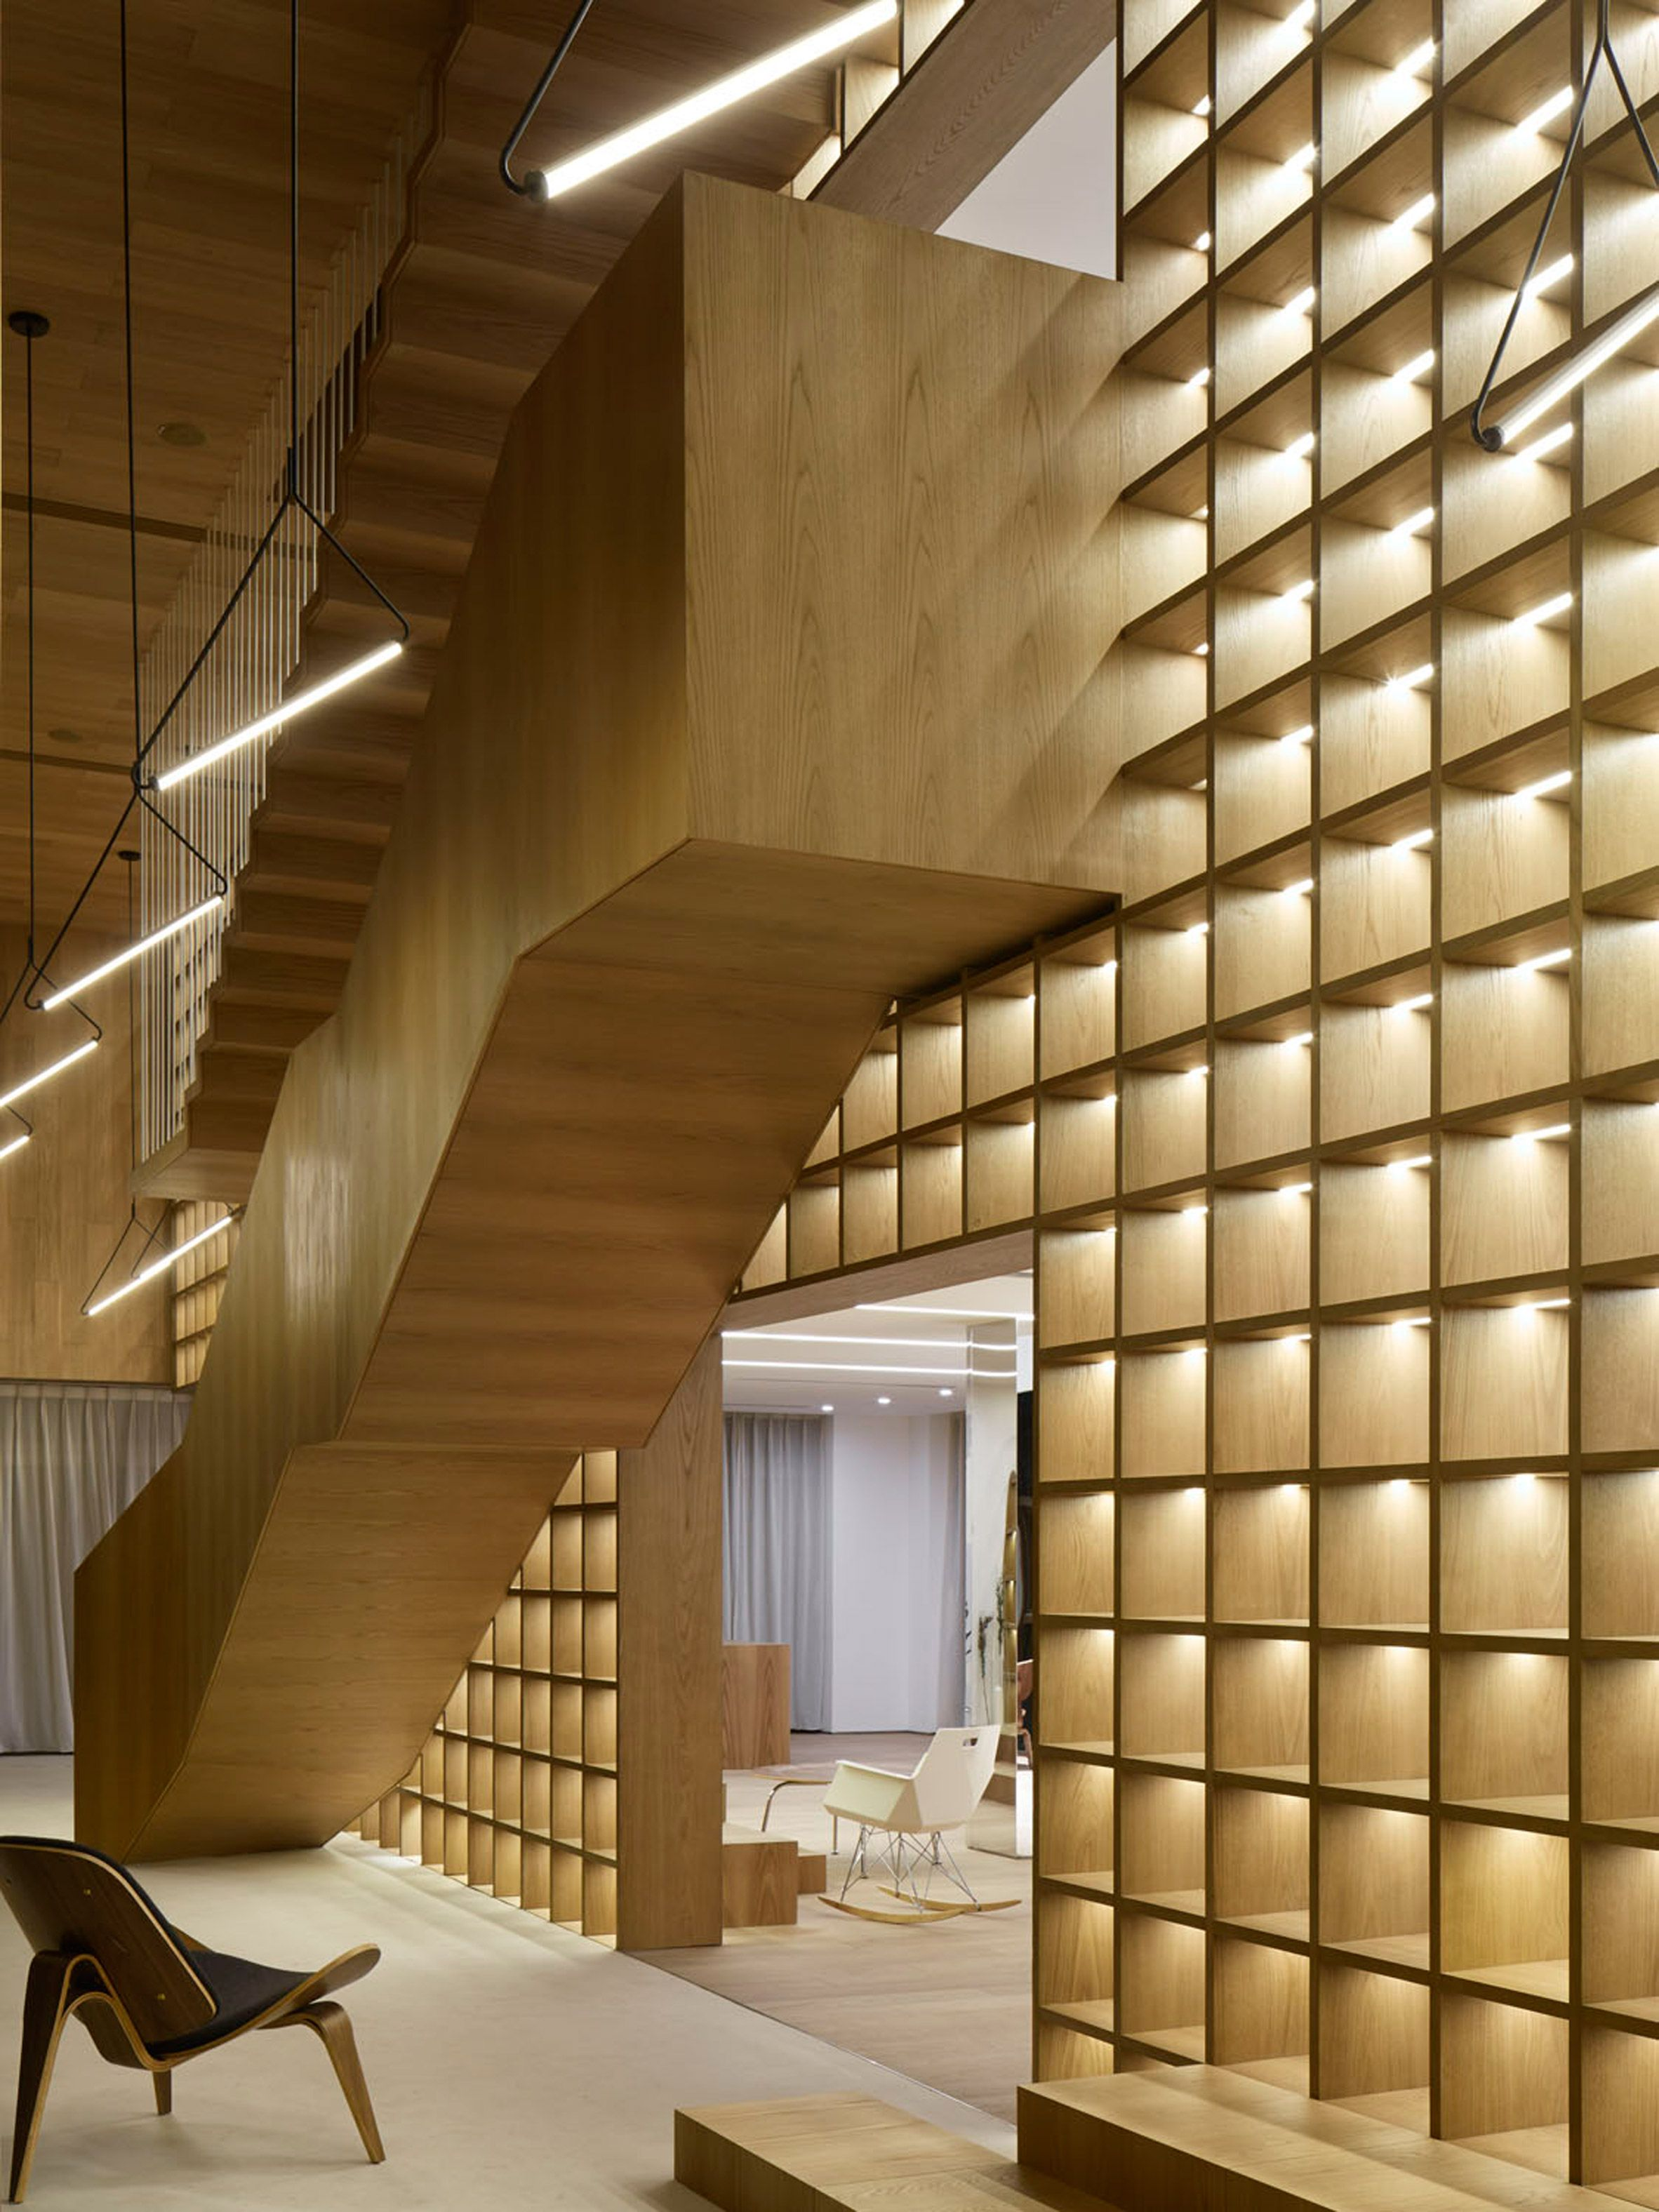 sales office design ideas. Giant Bookcase Forms Centrepiece Of Shanghai Sales Office By Team_Bldg Design Ideas